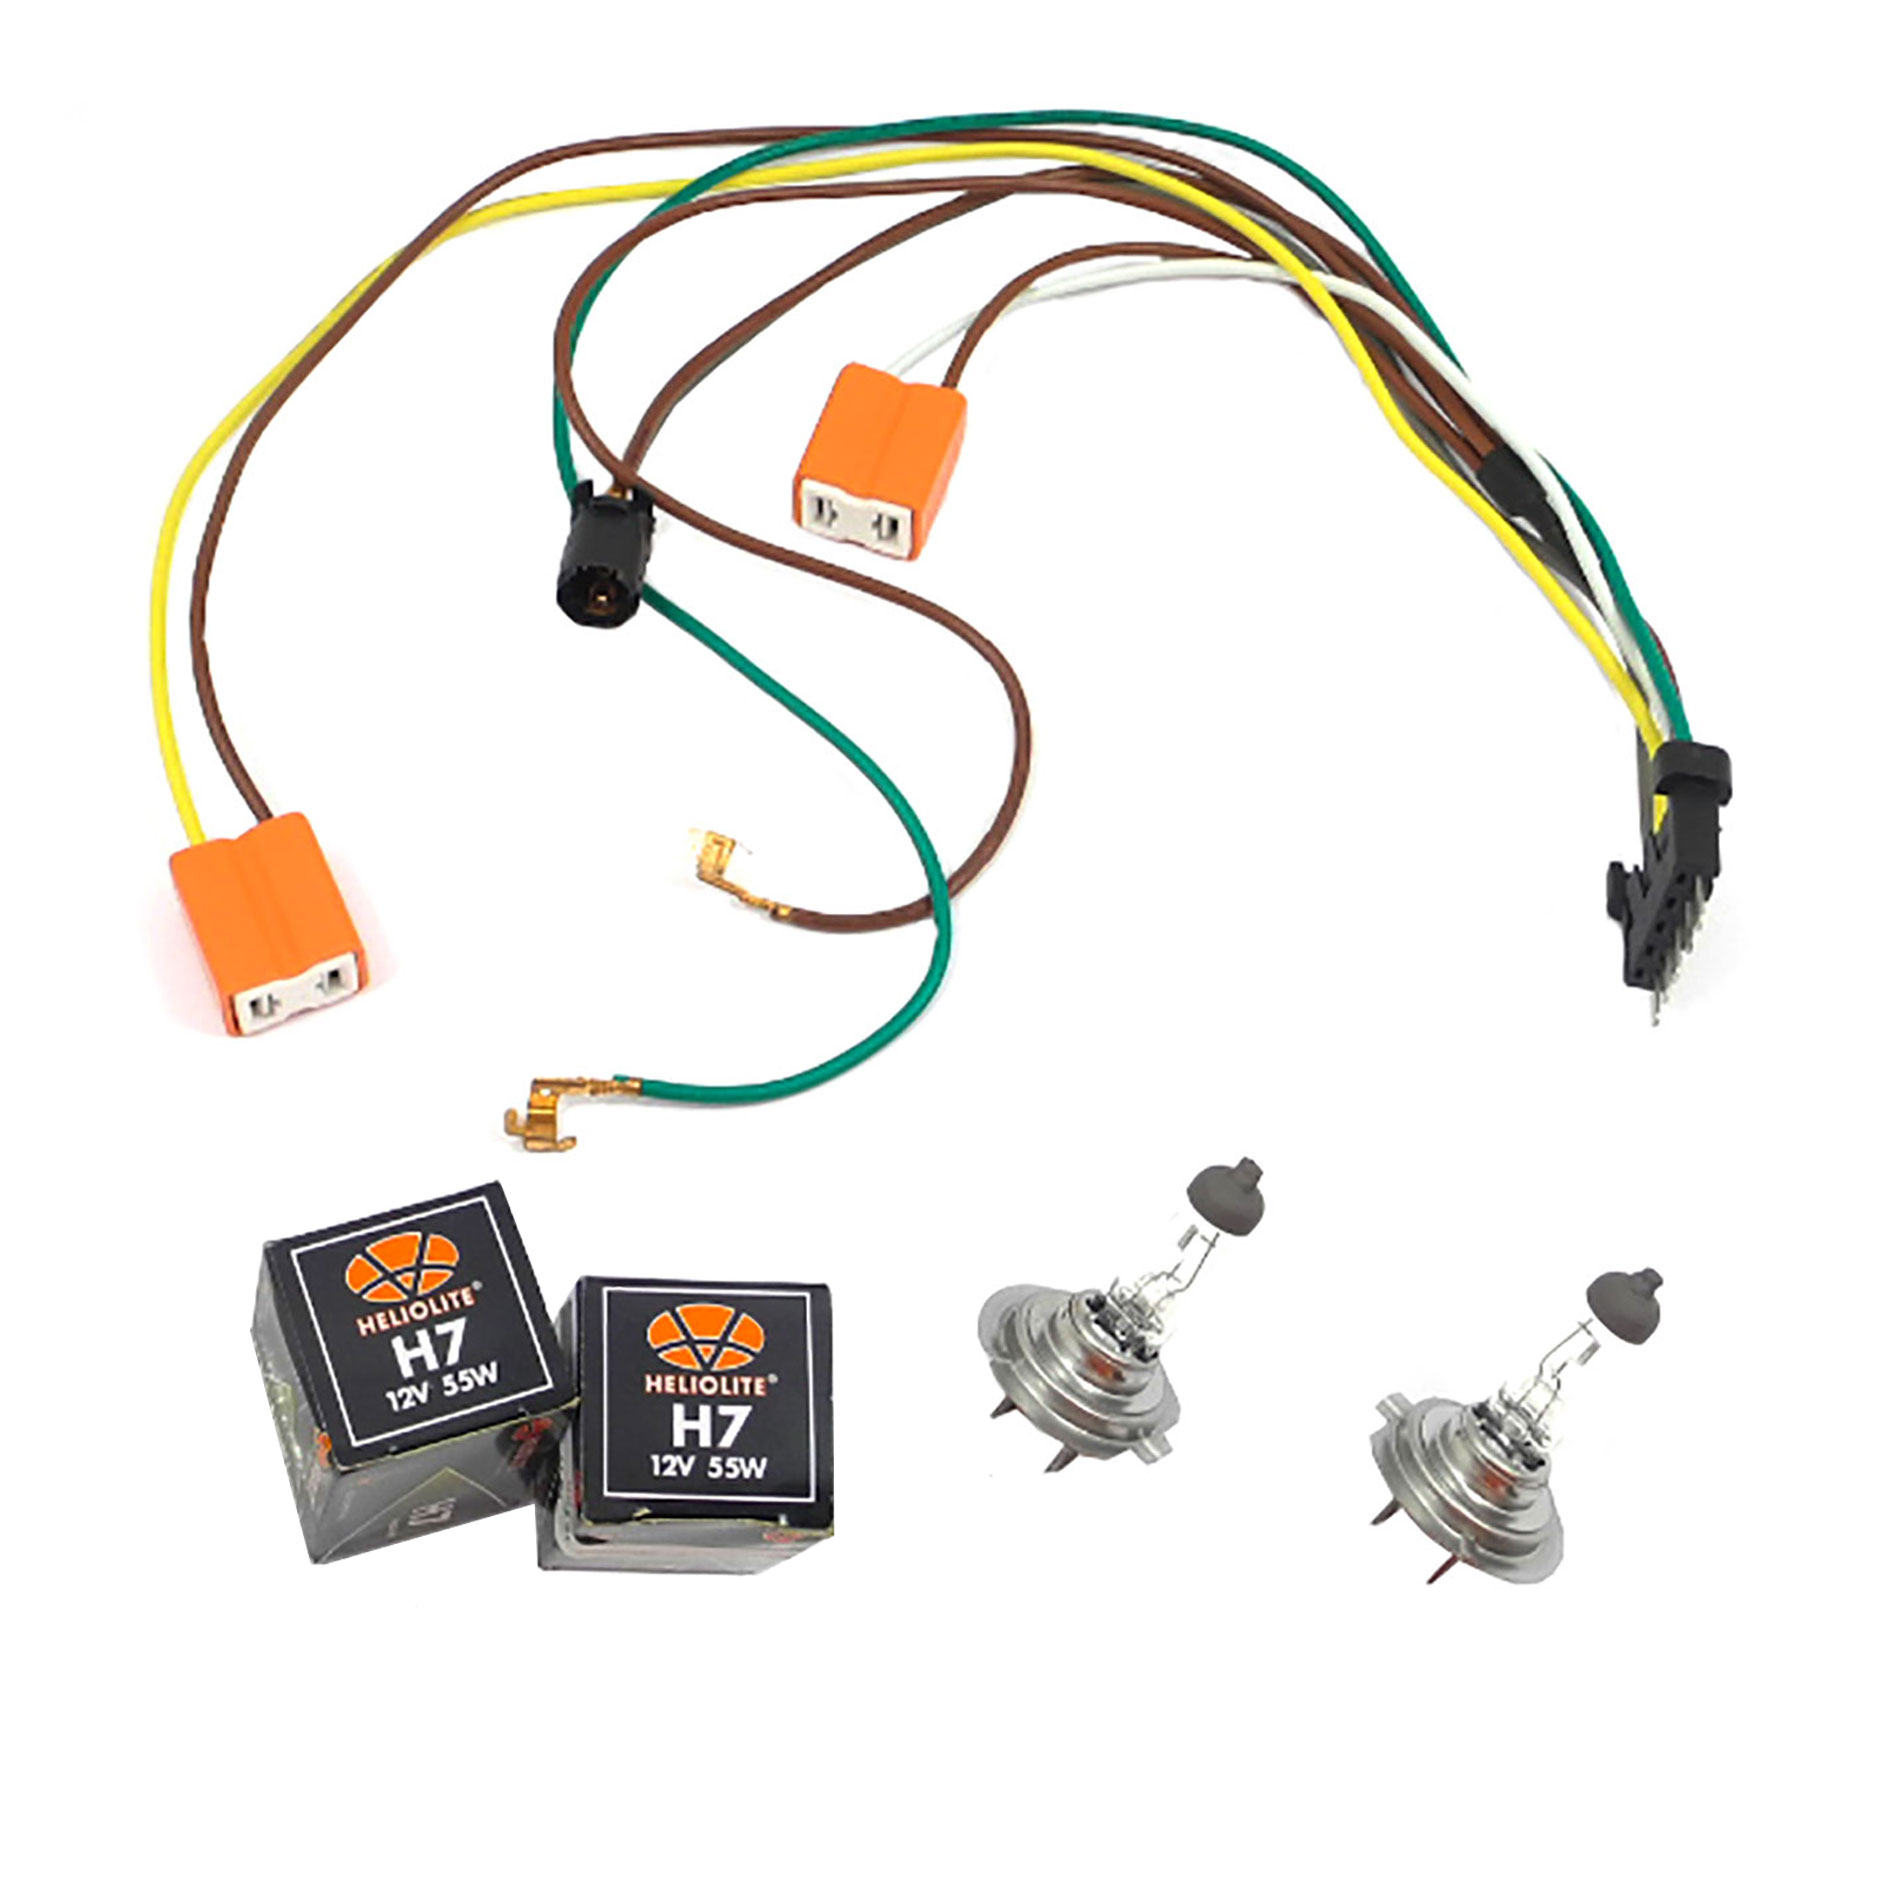 [NRIO_4796]   CF Advance For 02-07 Mercedes-Benz C320 C350 C280 C32 AMG C240 C230 Left or  Right Headlight Wiring Harness and H7 55W Headlight Bulb 2002 2003 2004  2005 2006 2007 - Walmart.com - Walmart.com | Mercedes Benz C280 4matic 2007 Side Markers Repair Wire Harness |  | Walmart